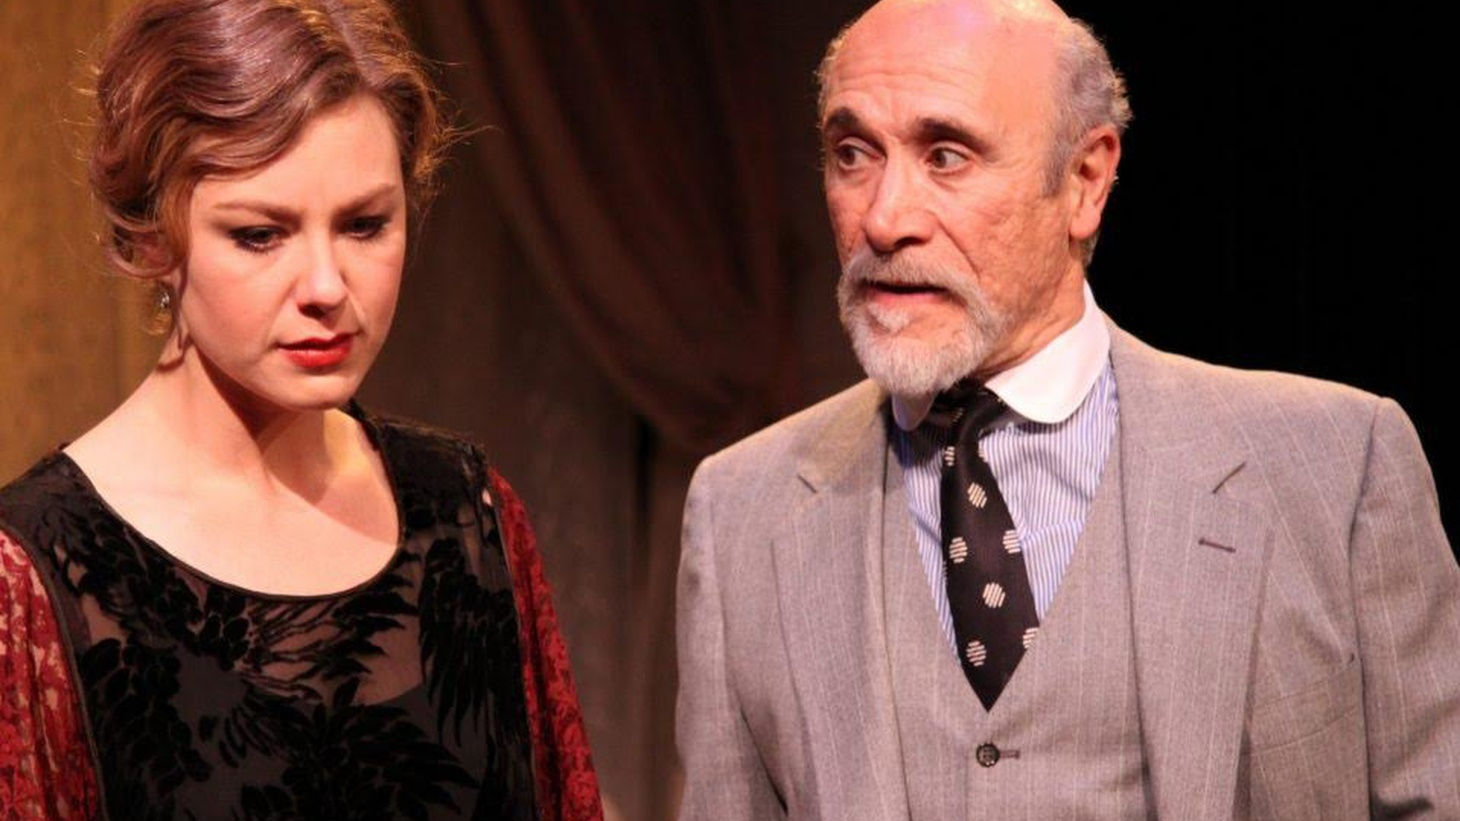 Listening to Ibsen's classic Hedda Gabler at Antaeus Theatre Company, I was struck by unexpected resonances from a play I thought I knew.